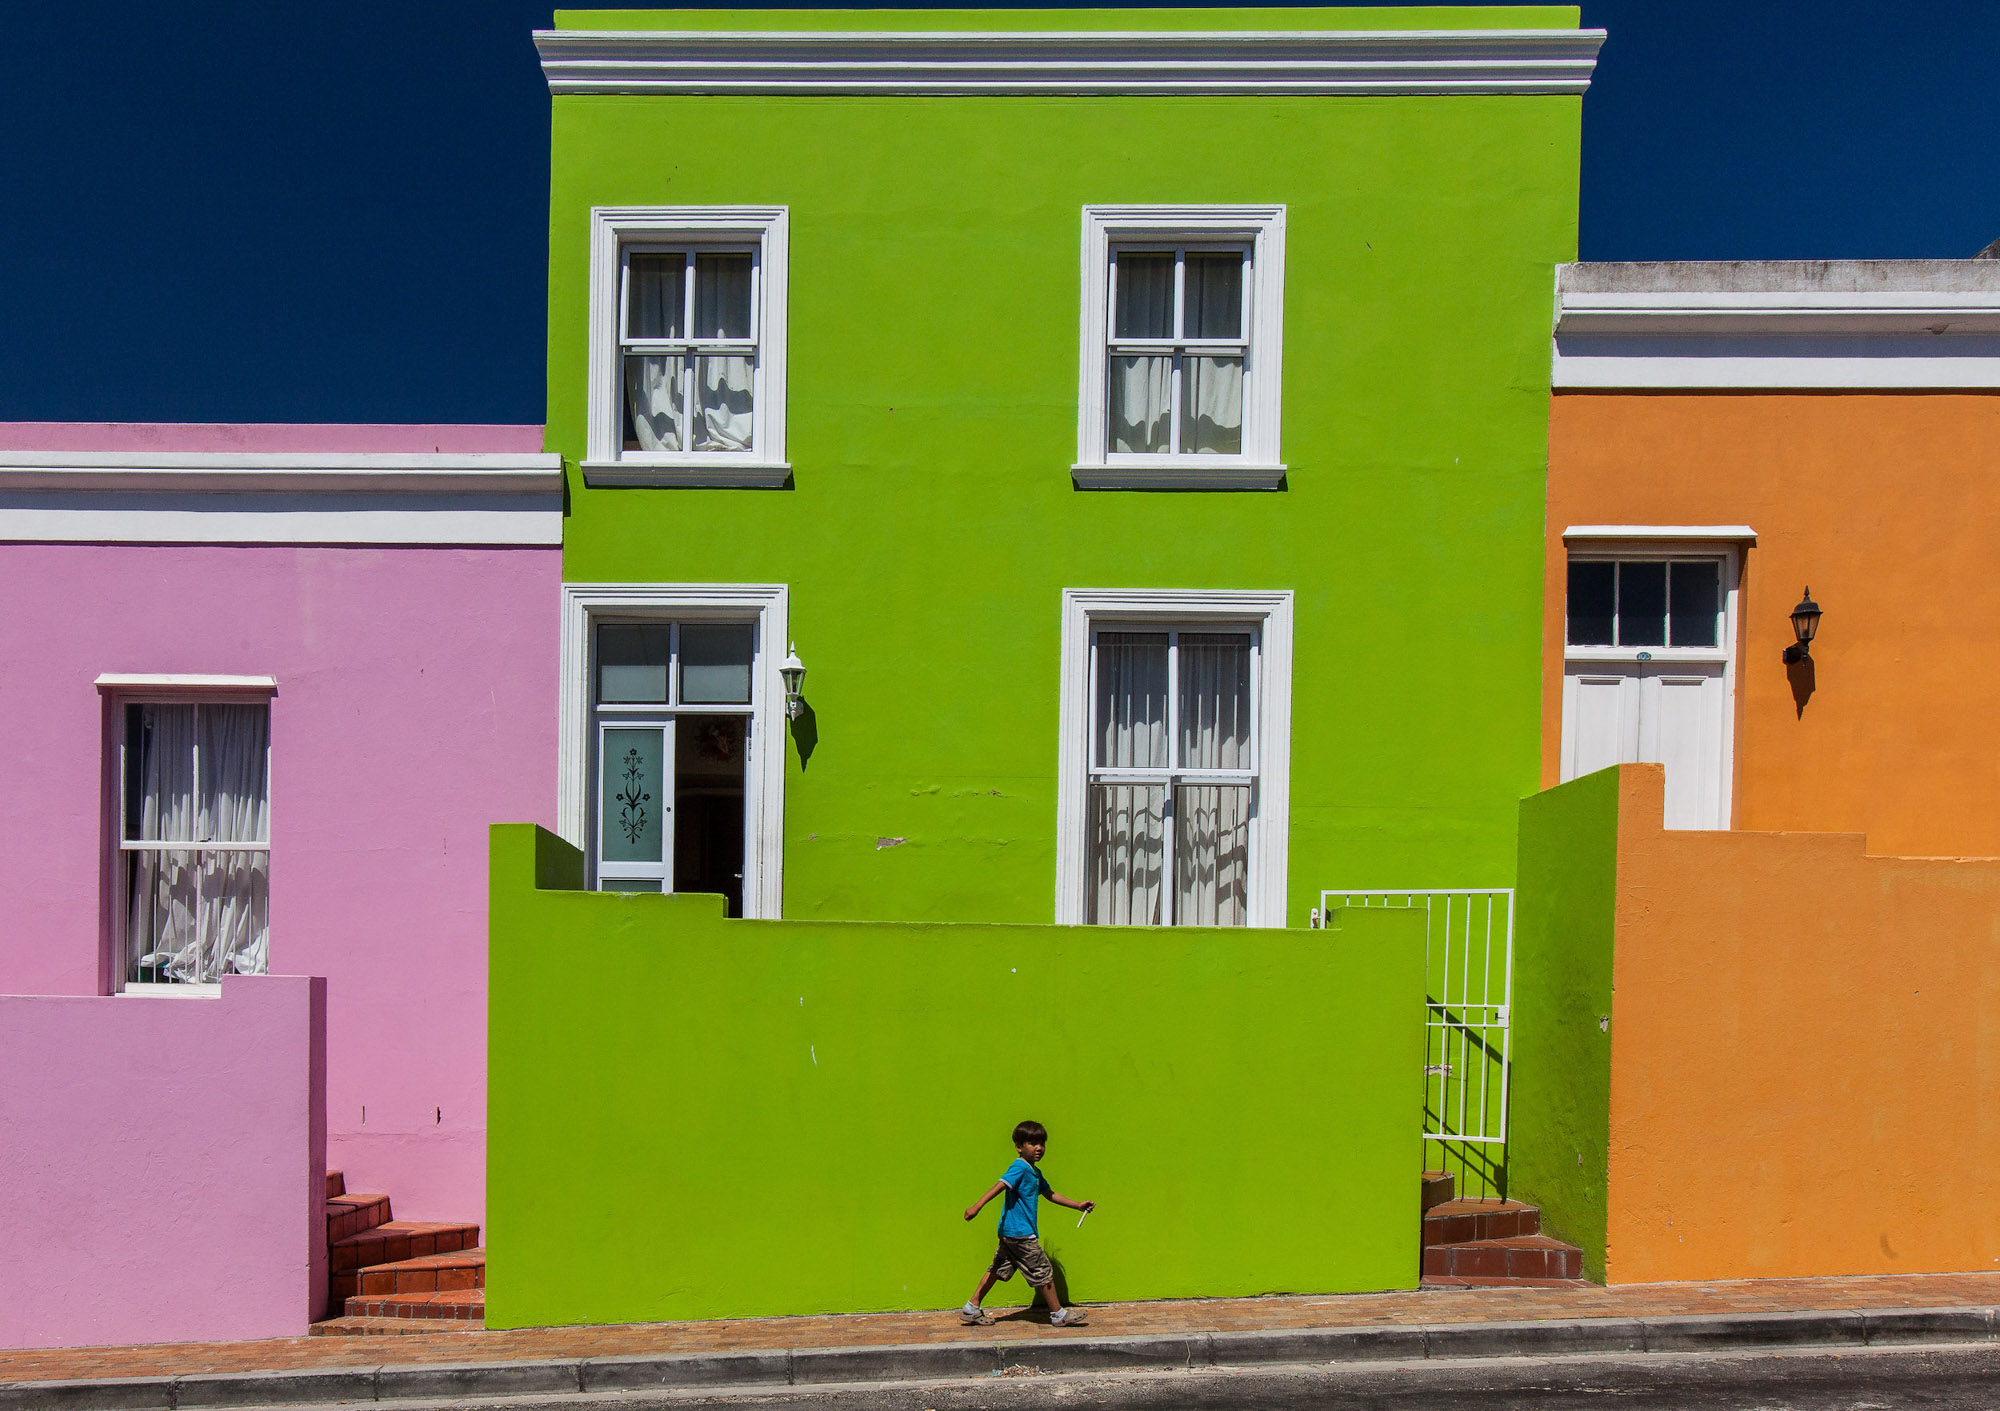 Colourful buildings against a blue sky in Cape Town South Africa